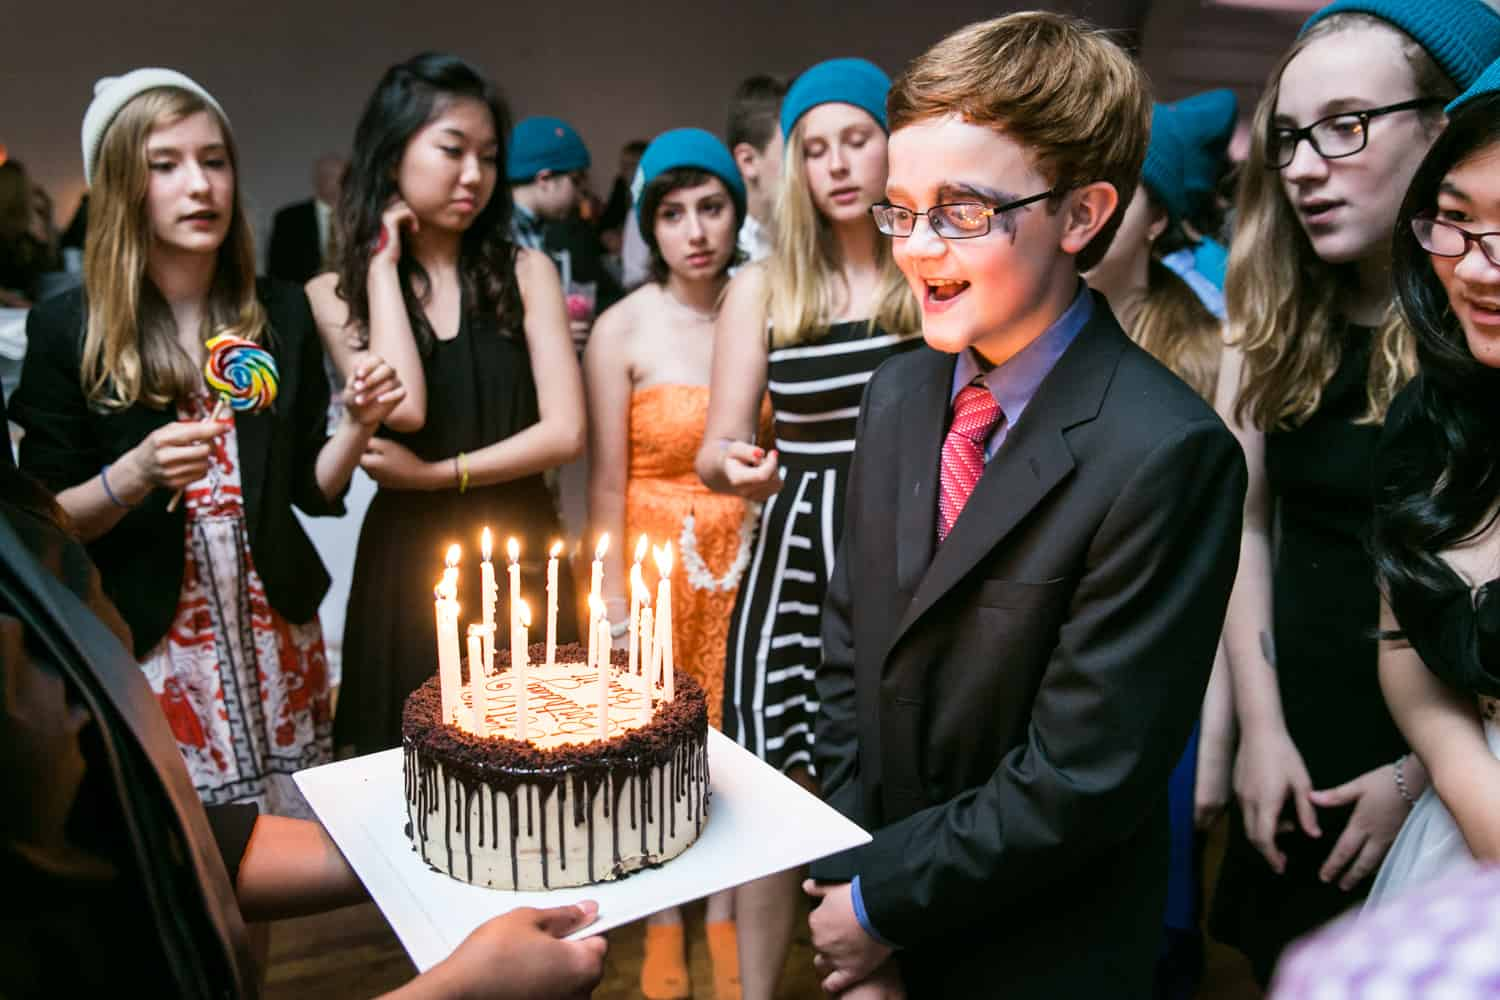 Boy blowing out birthday candles for an article on how to plan the perfect bar mitzvah